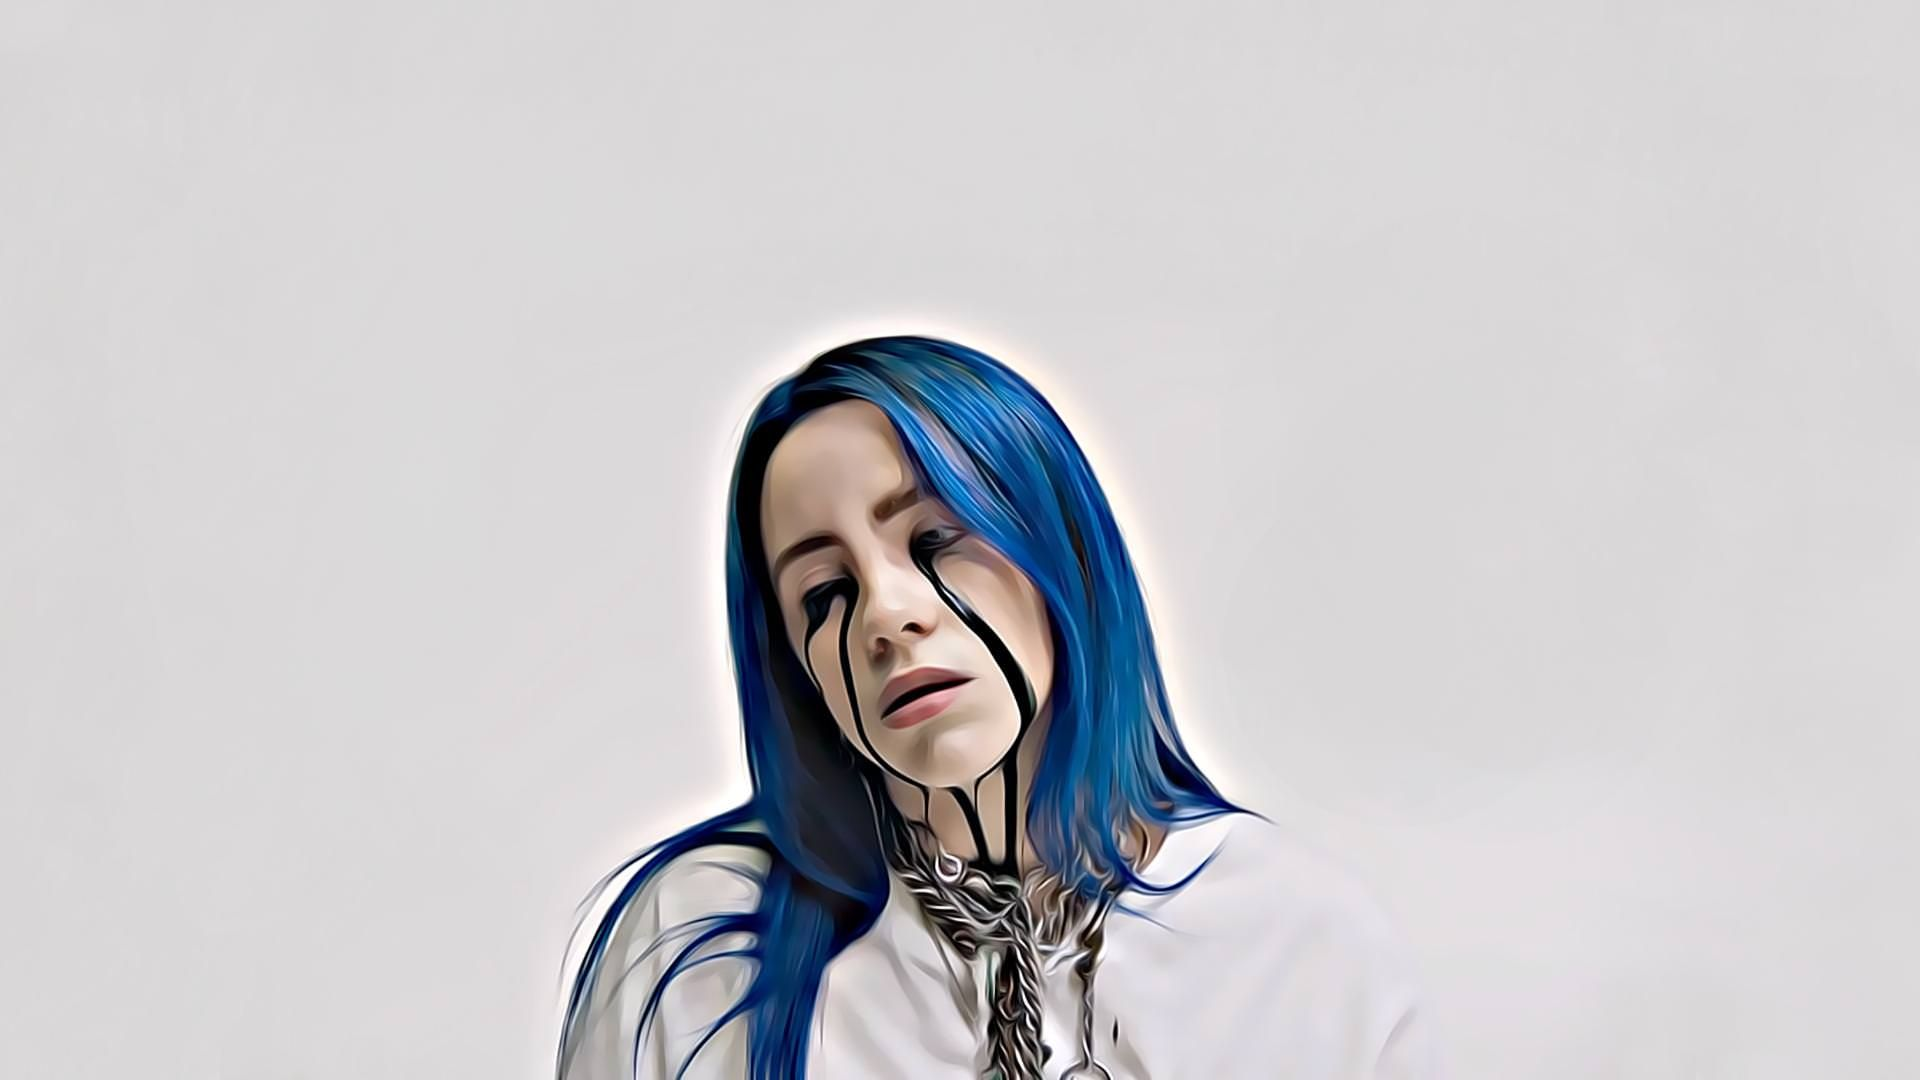 I Made This From Billie Eilish S Latest Music Video Latest Music Videos Latest Music Billie Eilish